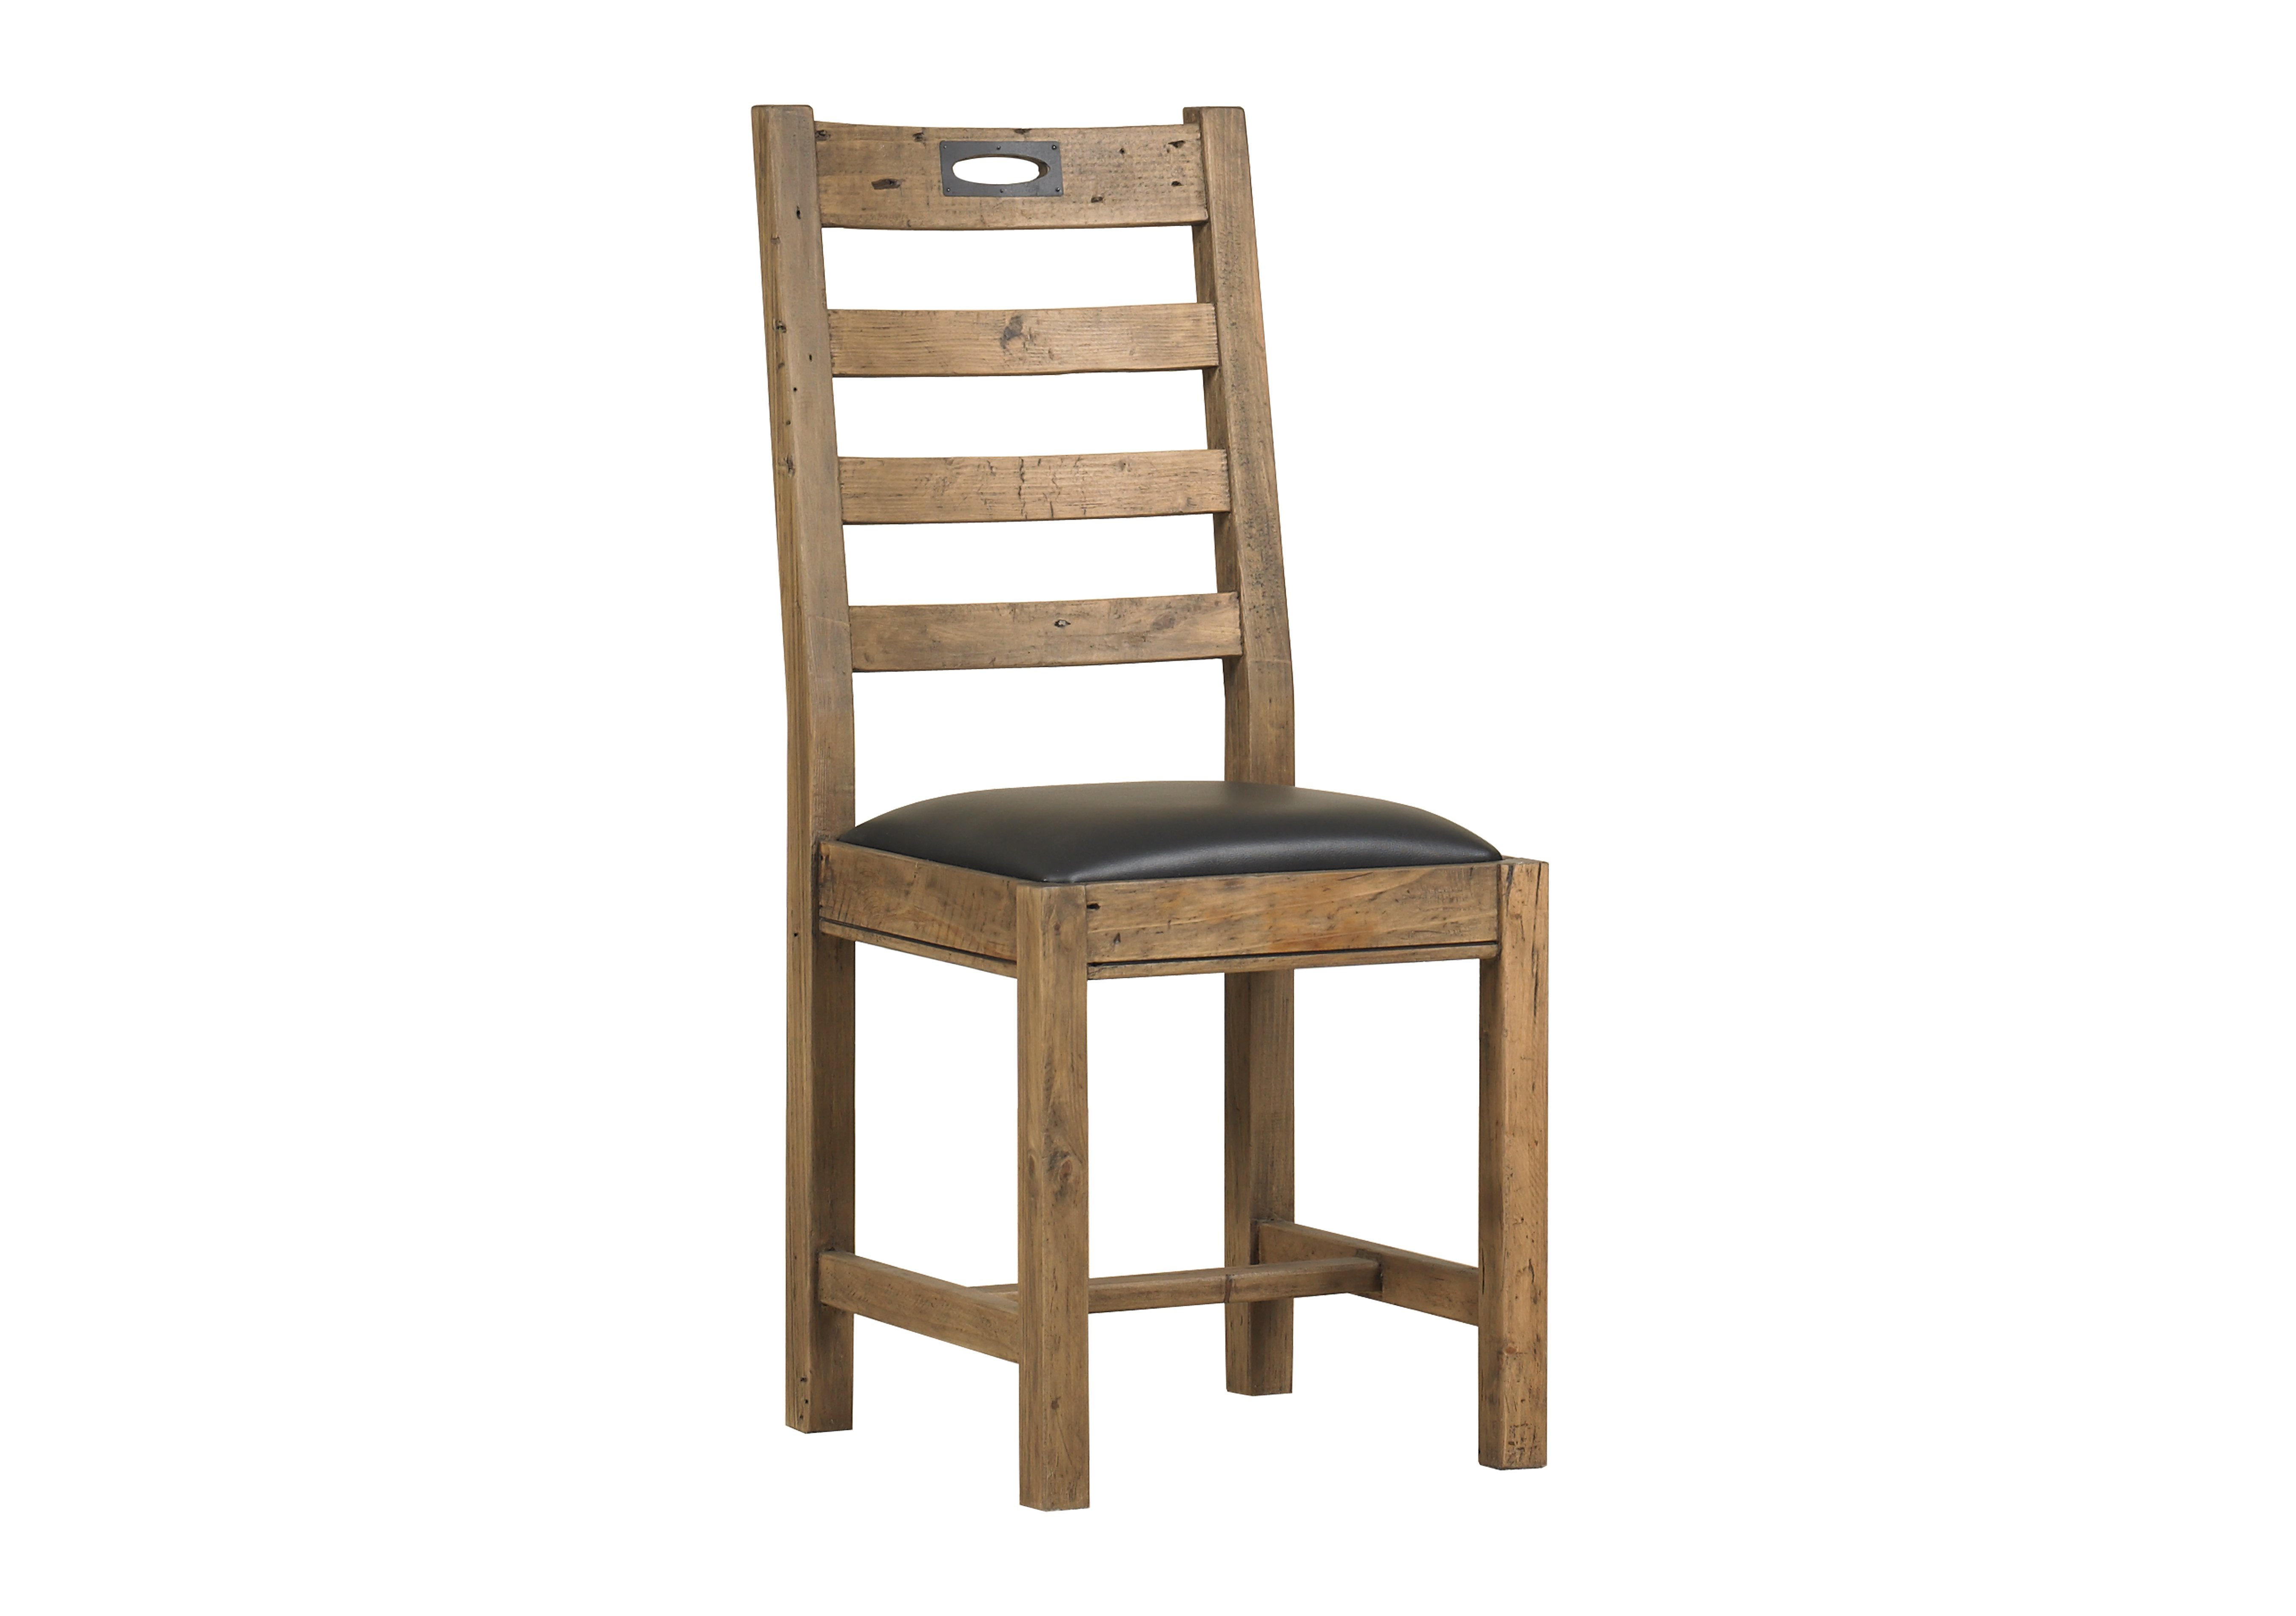 Wooden Chairs wooden dining chairs - furniture village